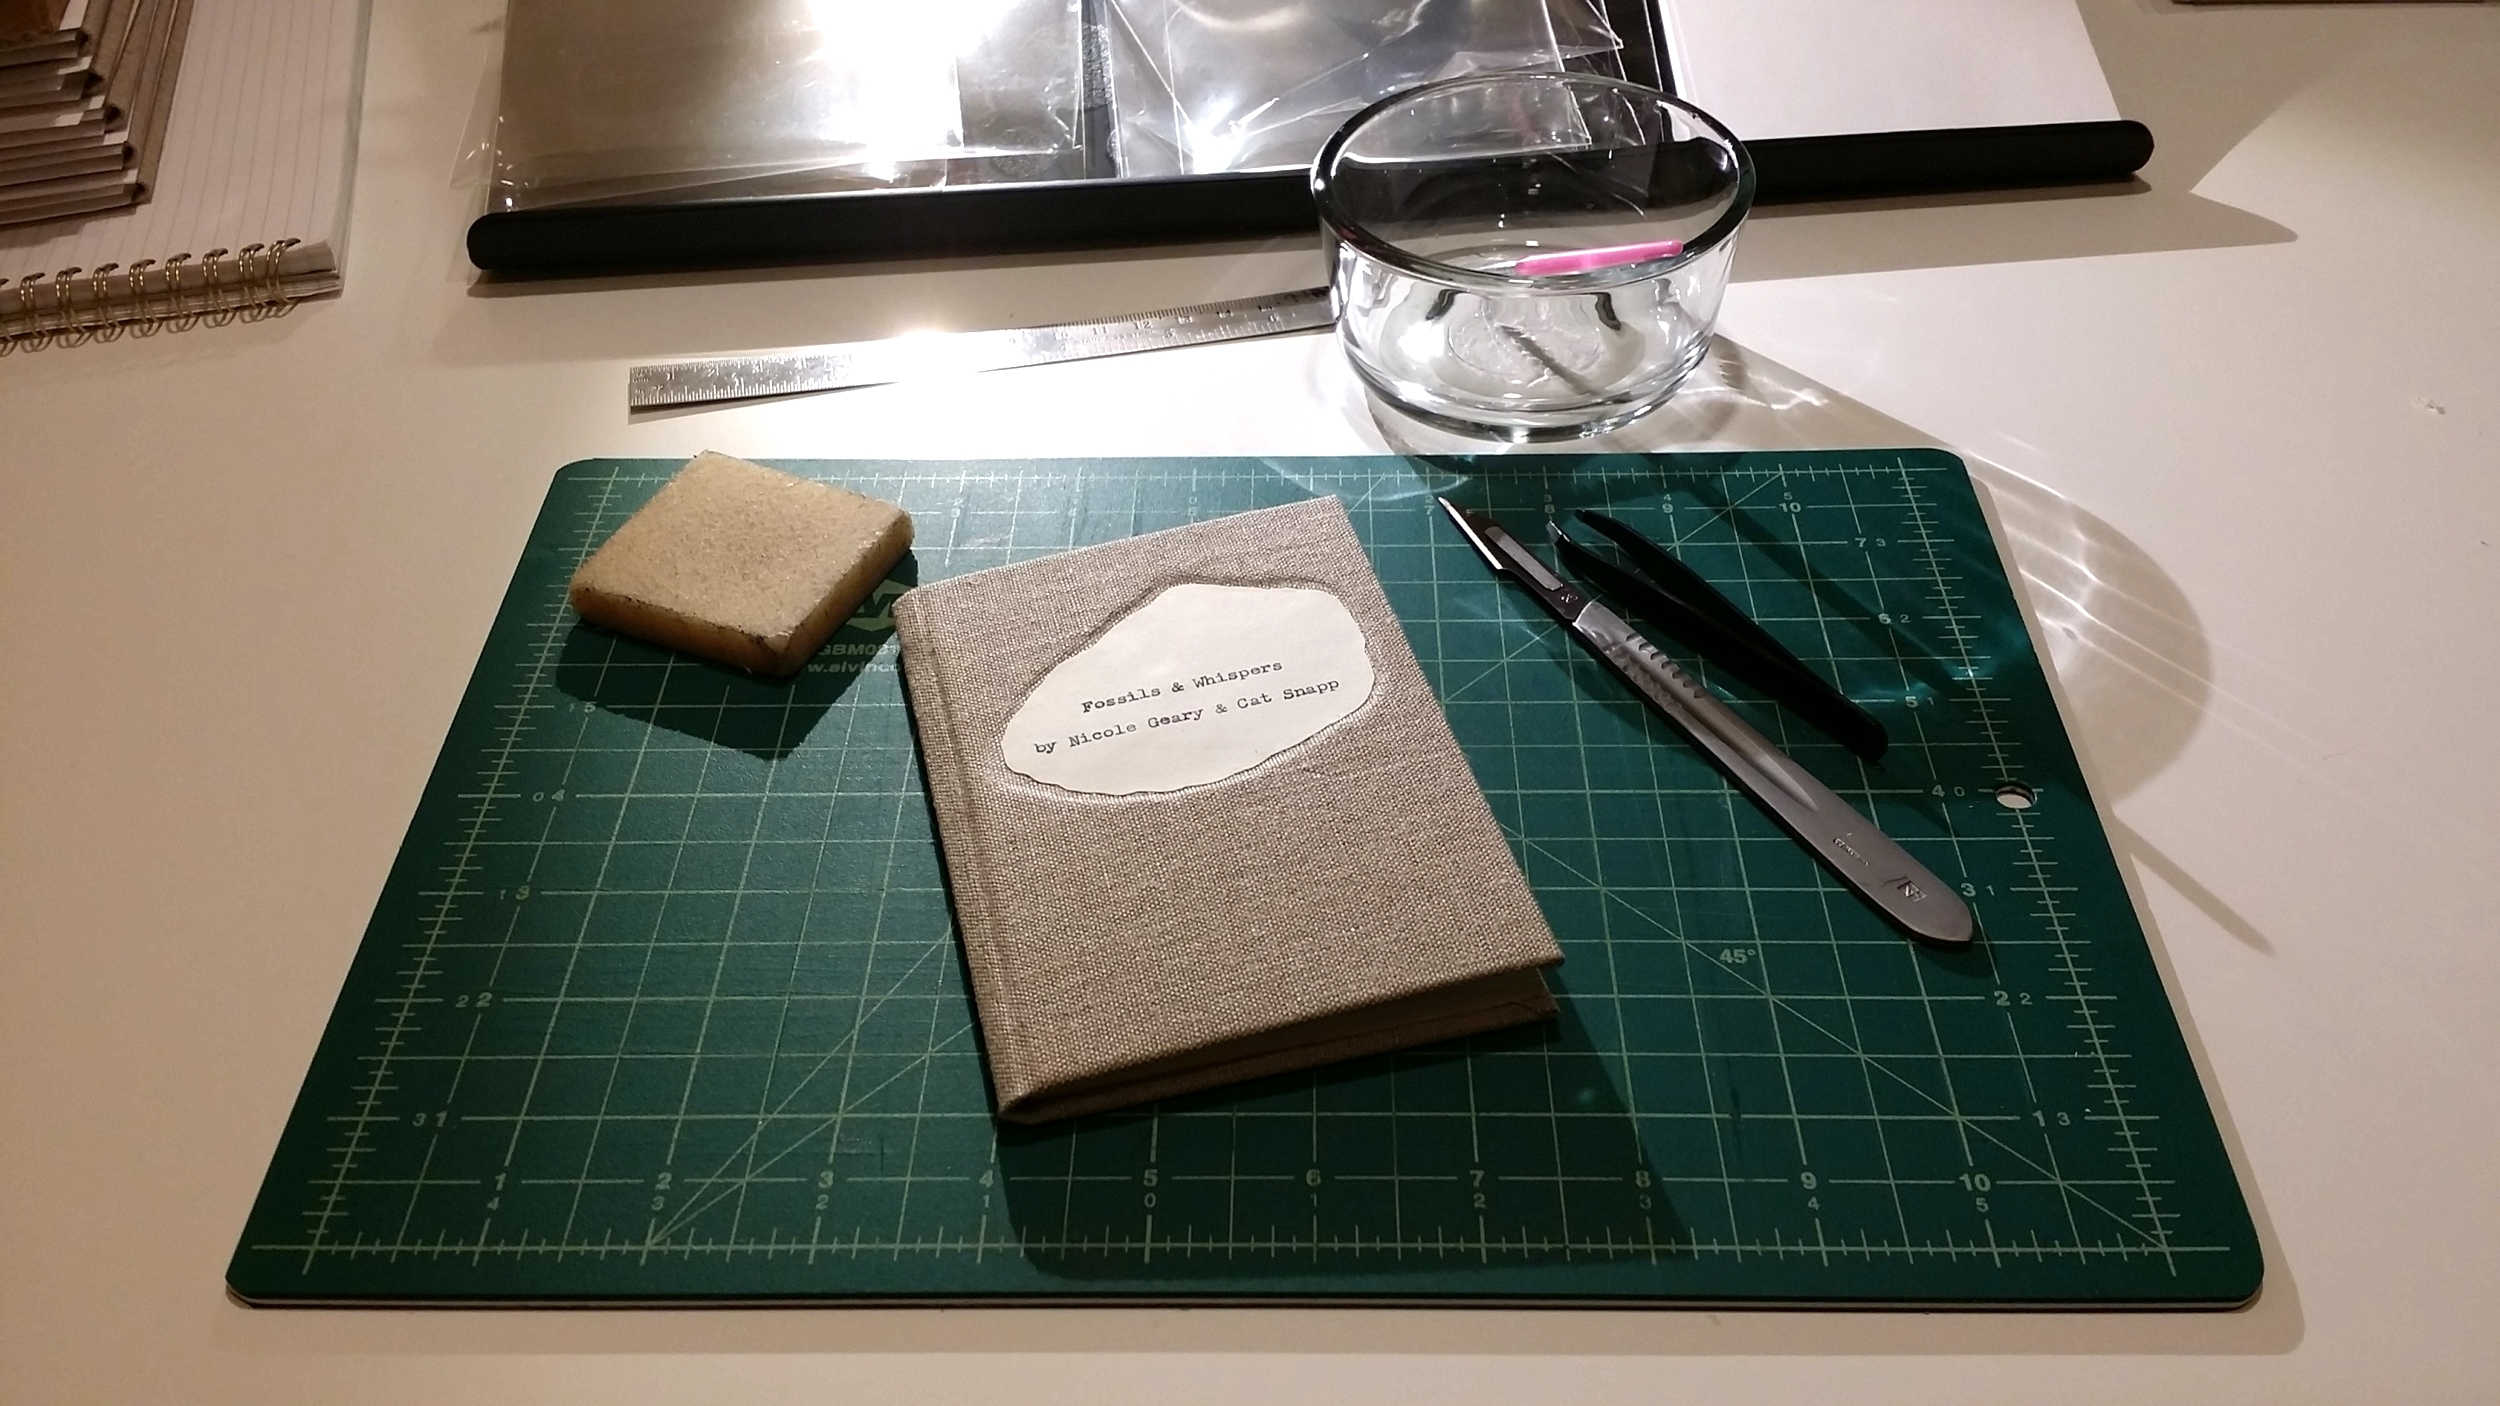 A quiet conclusion to finishing Fossils & Whispers: I finished the edition in December 2015 in my home studio.